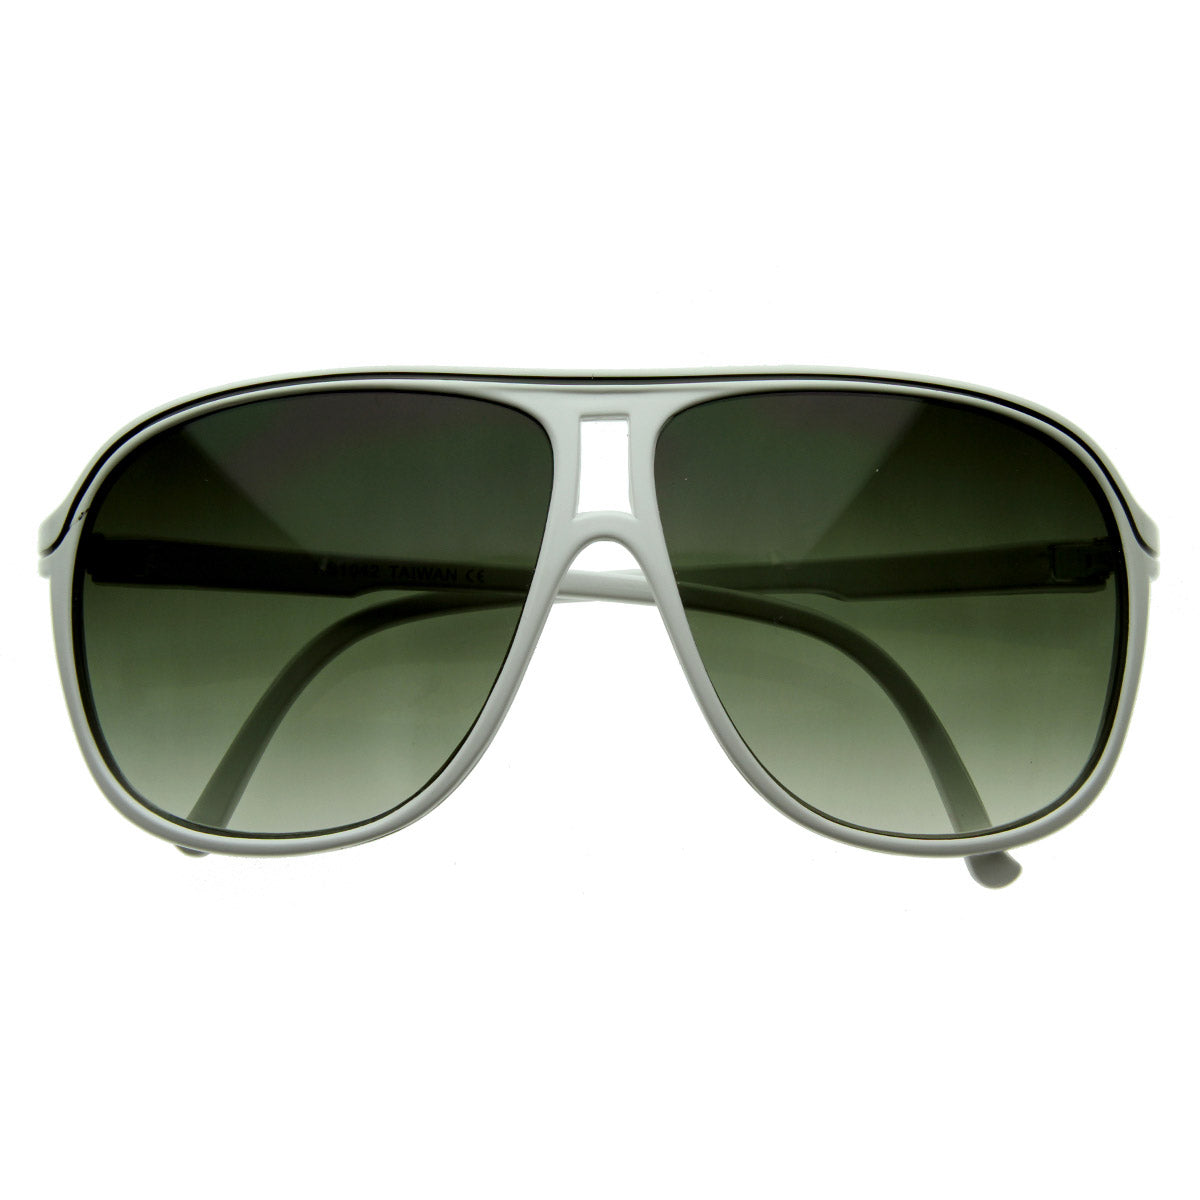 Large Retro Style Tear drop Shaped Aviator Sunglasses